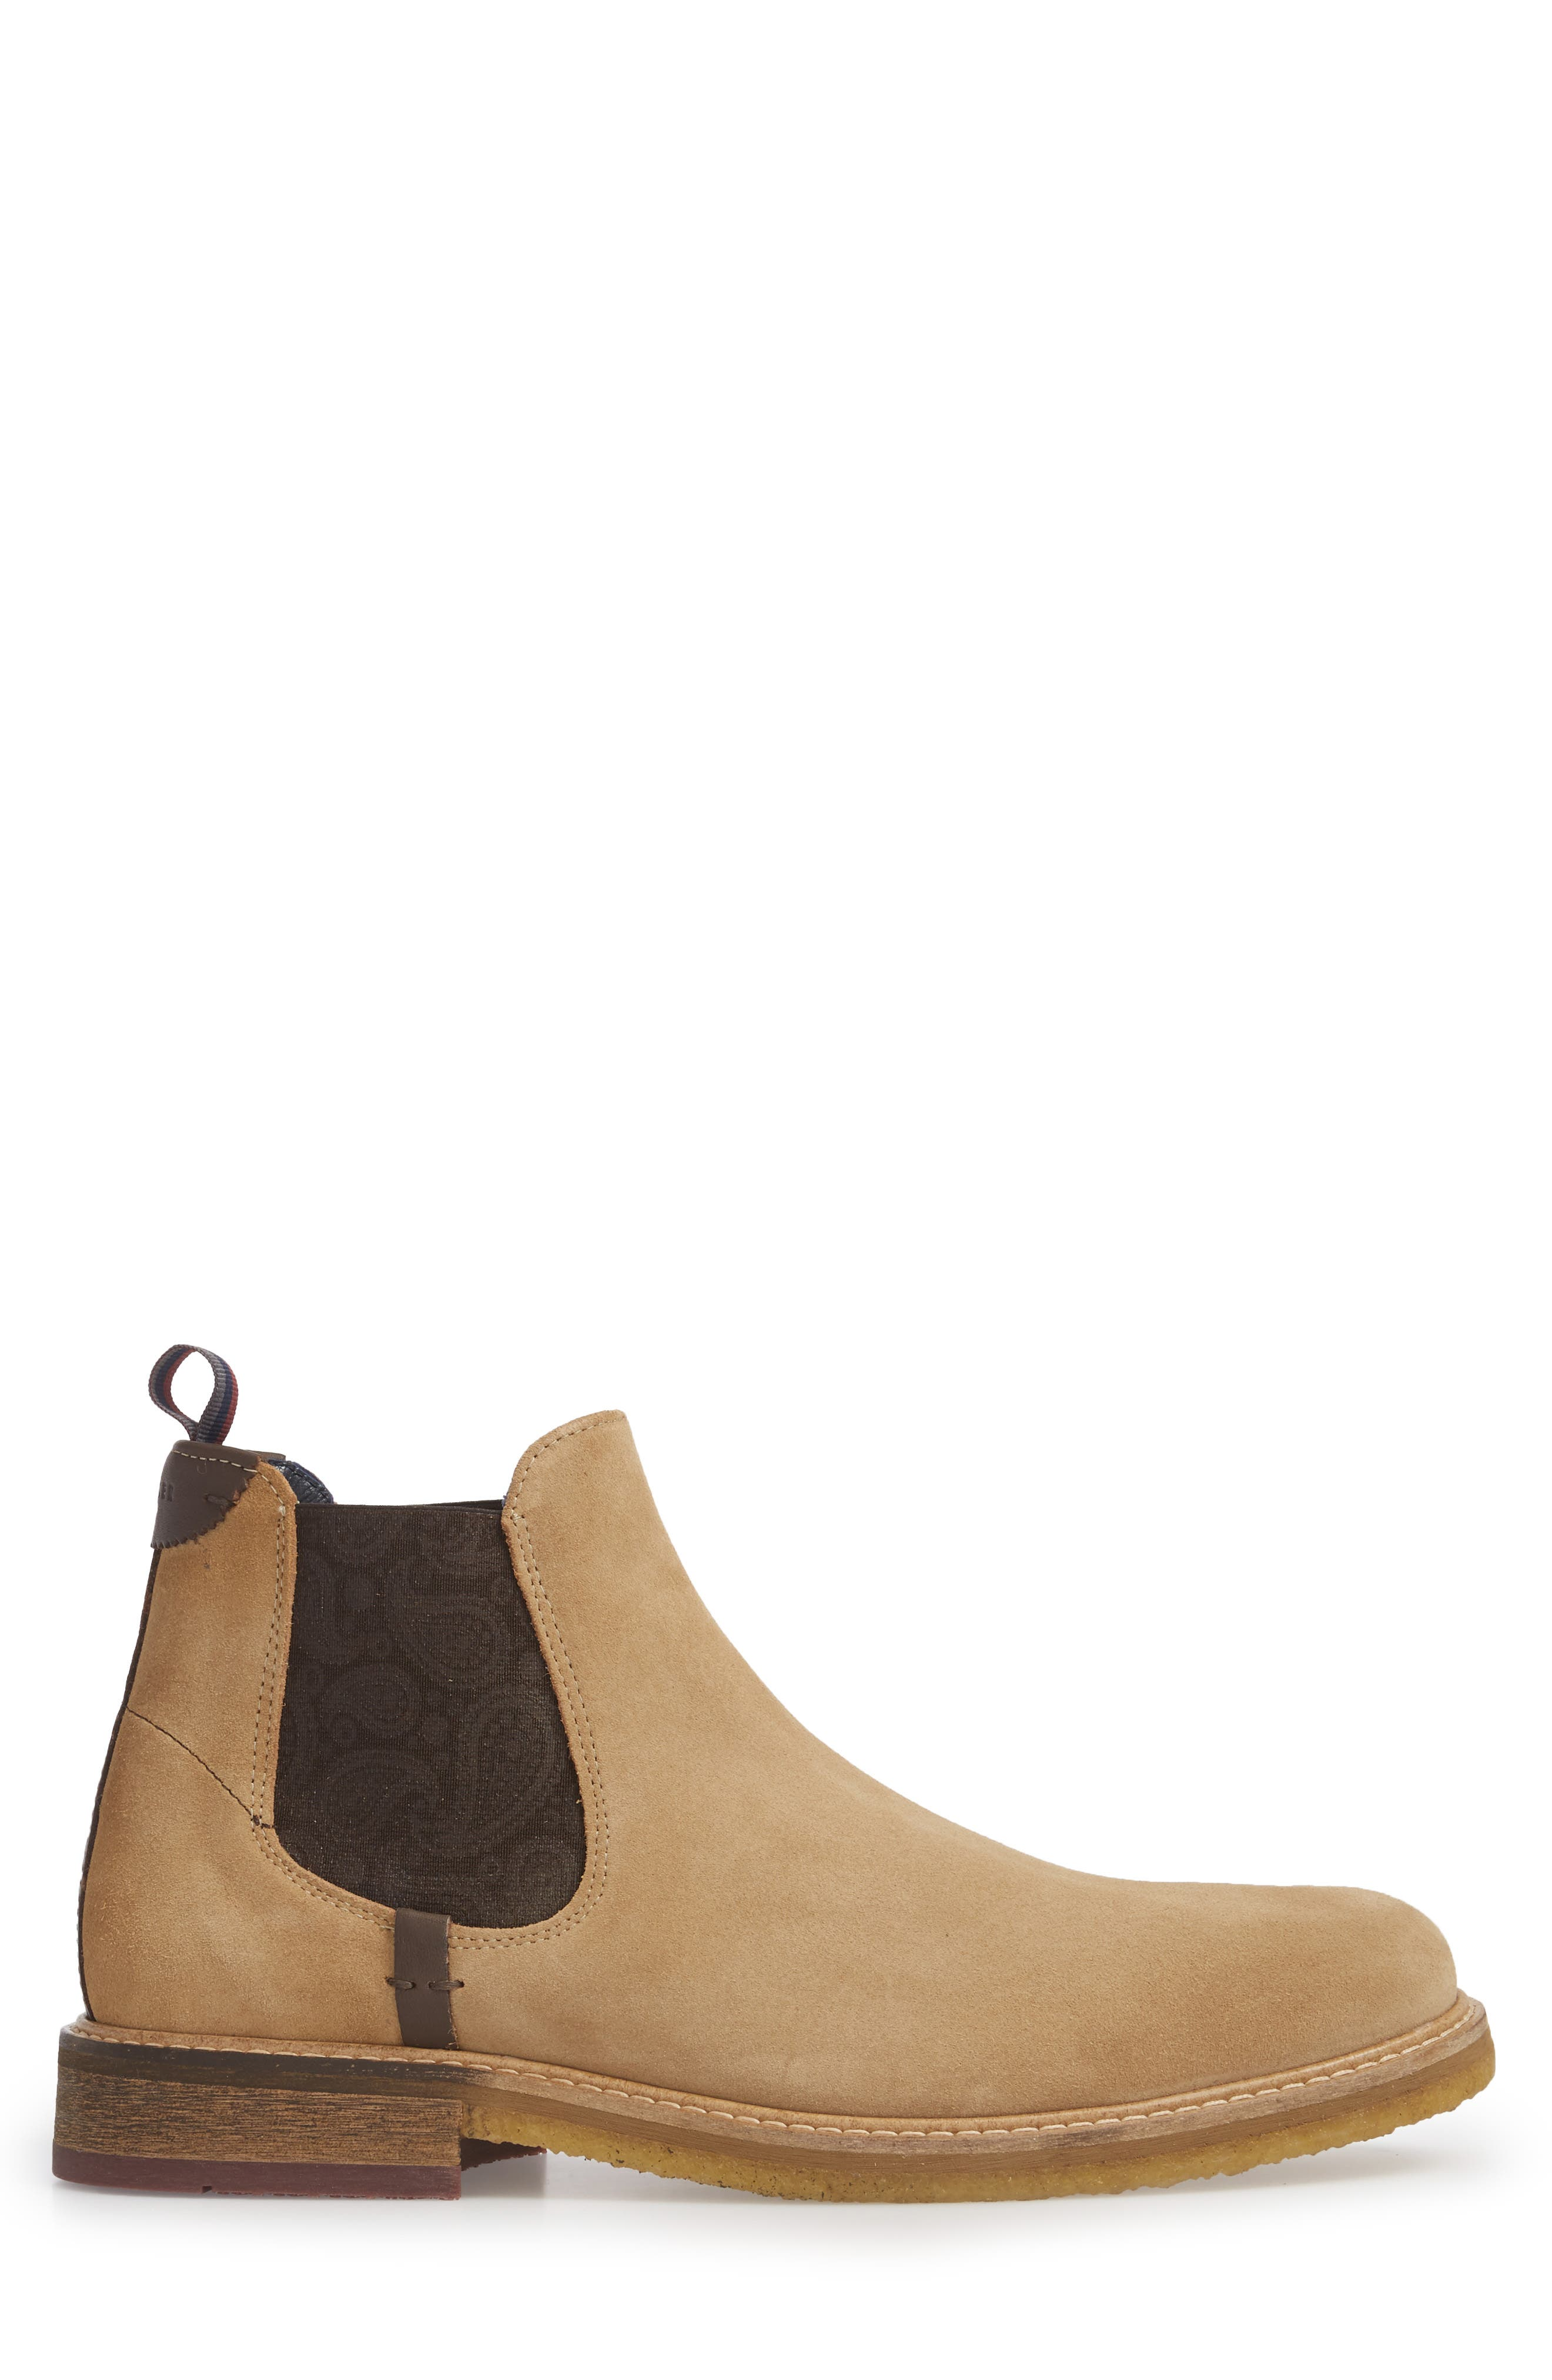 Bronzo Chelsea Boot,                             Alternate thumbnail 3, color,                             Sand Suede